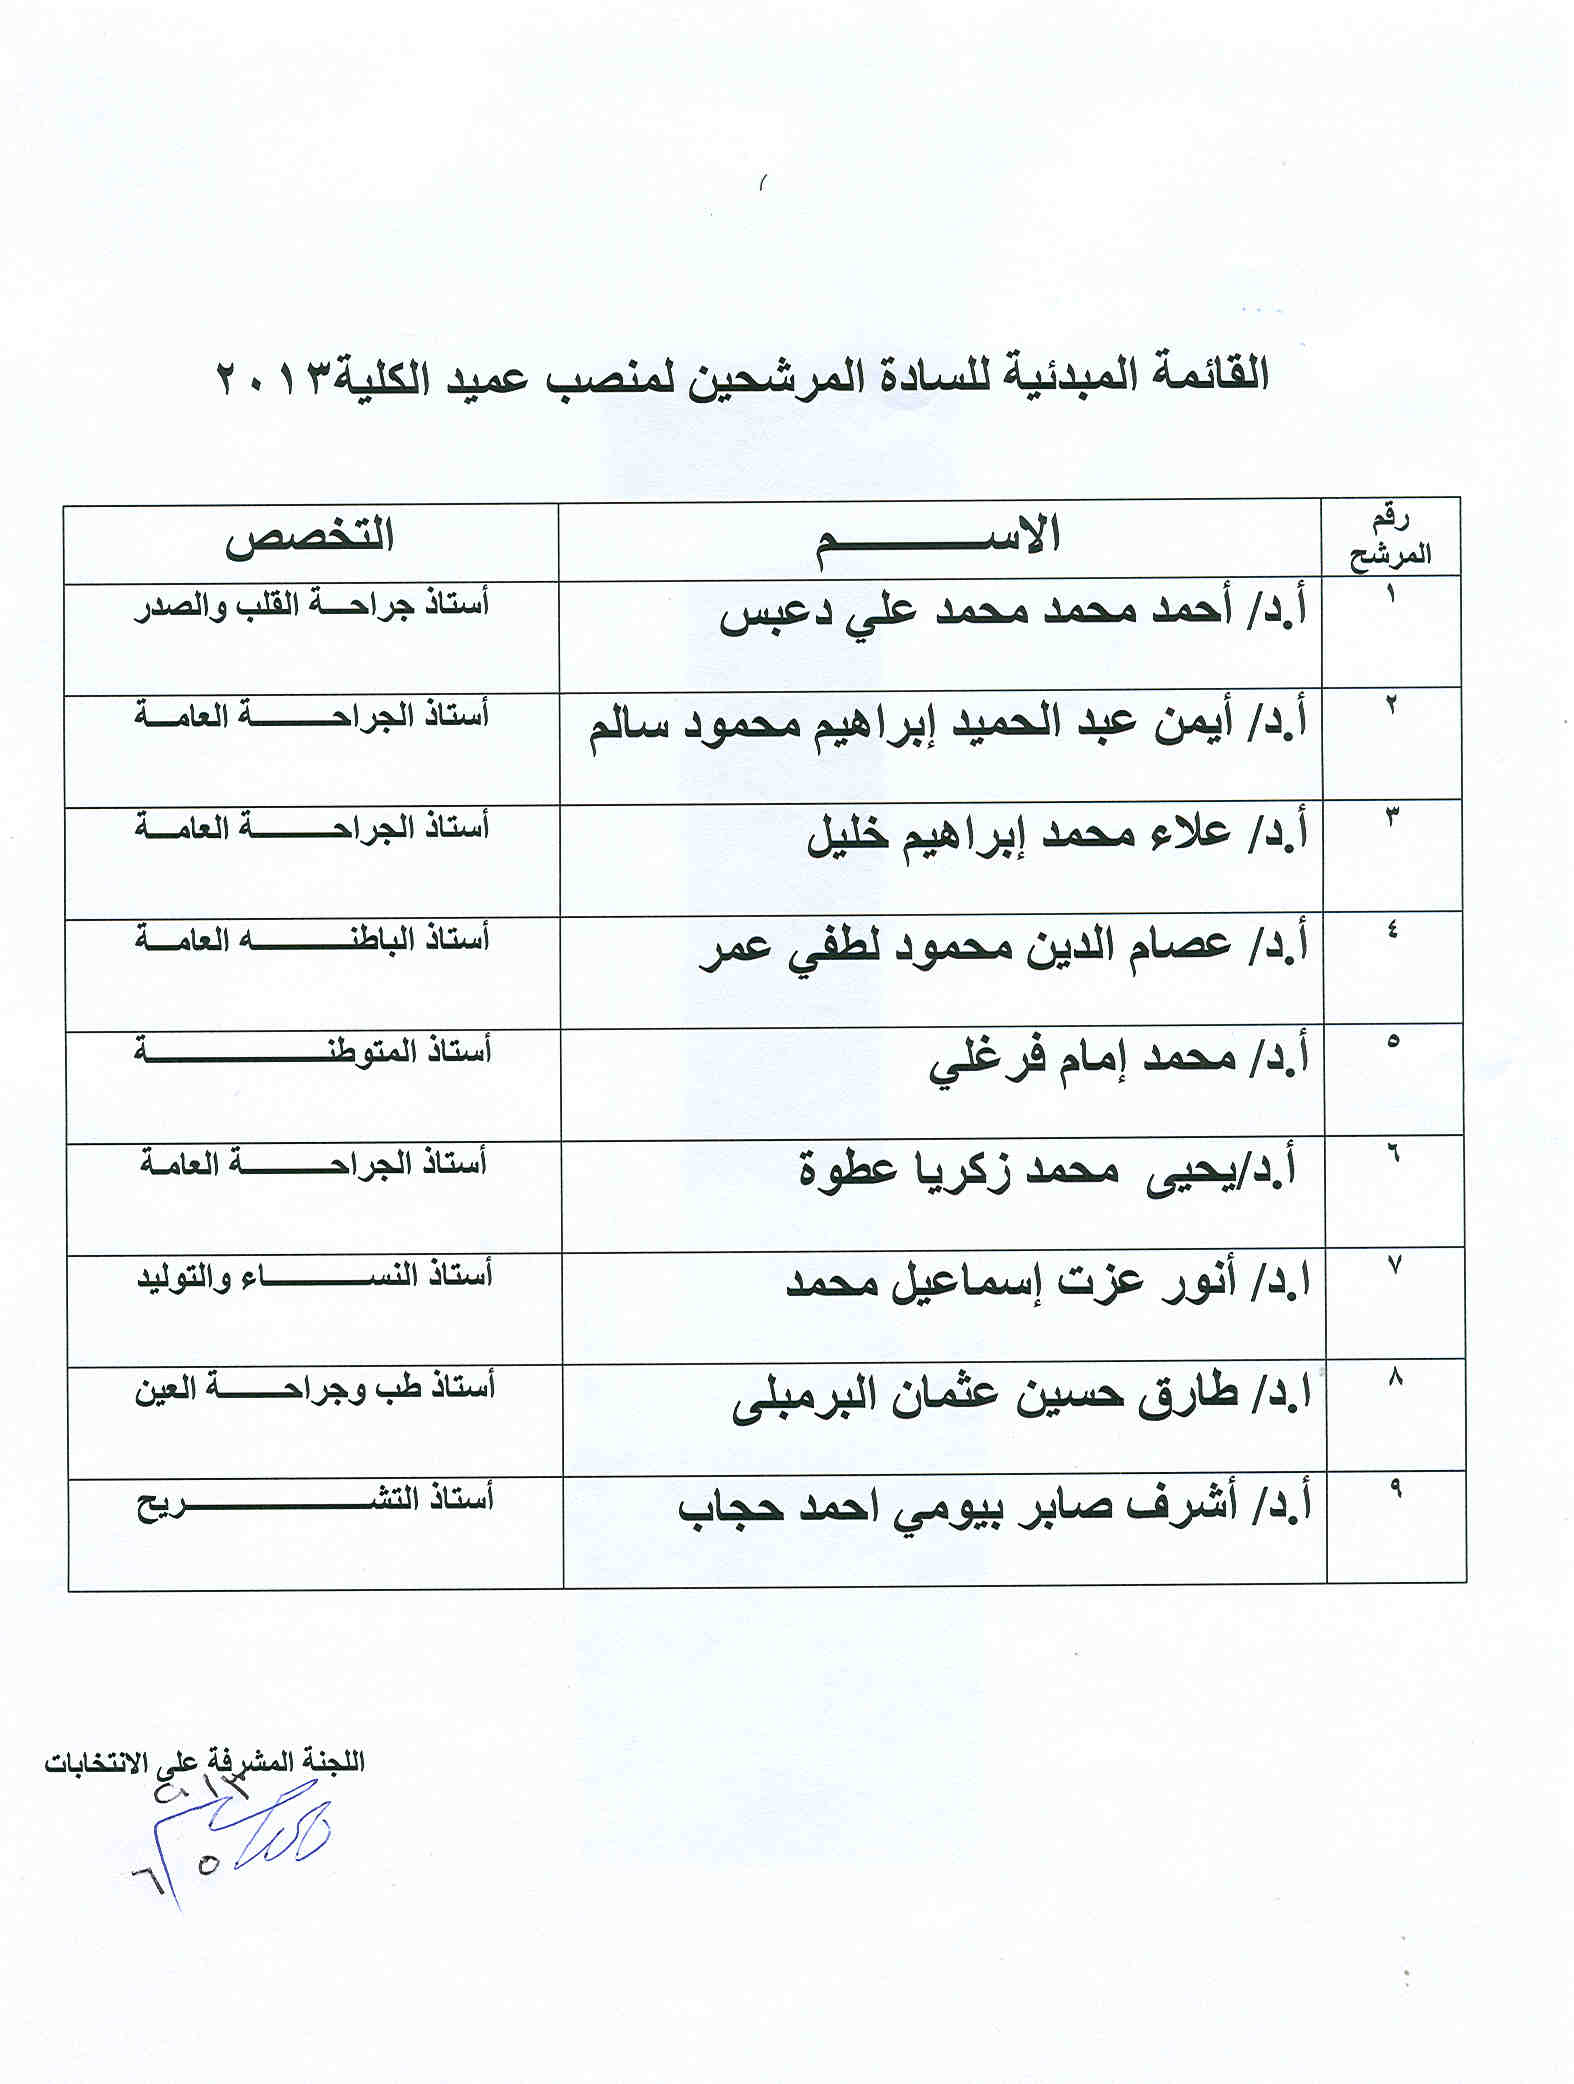 The initial list of candidates for the position of Dean